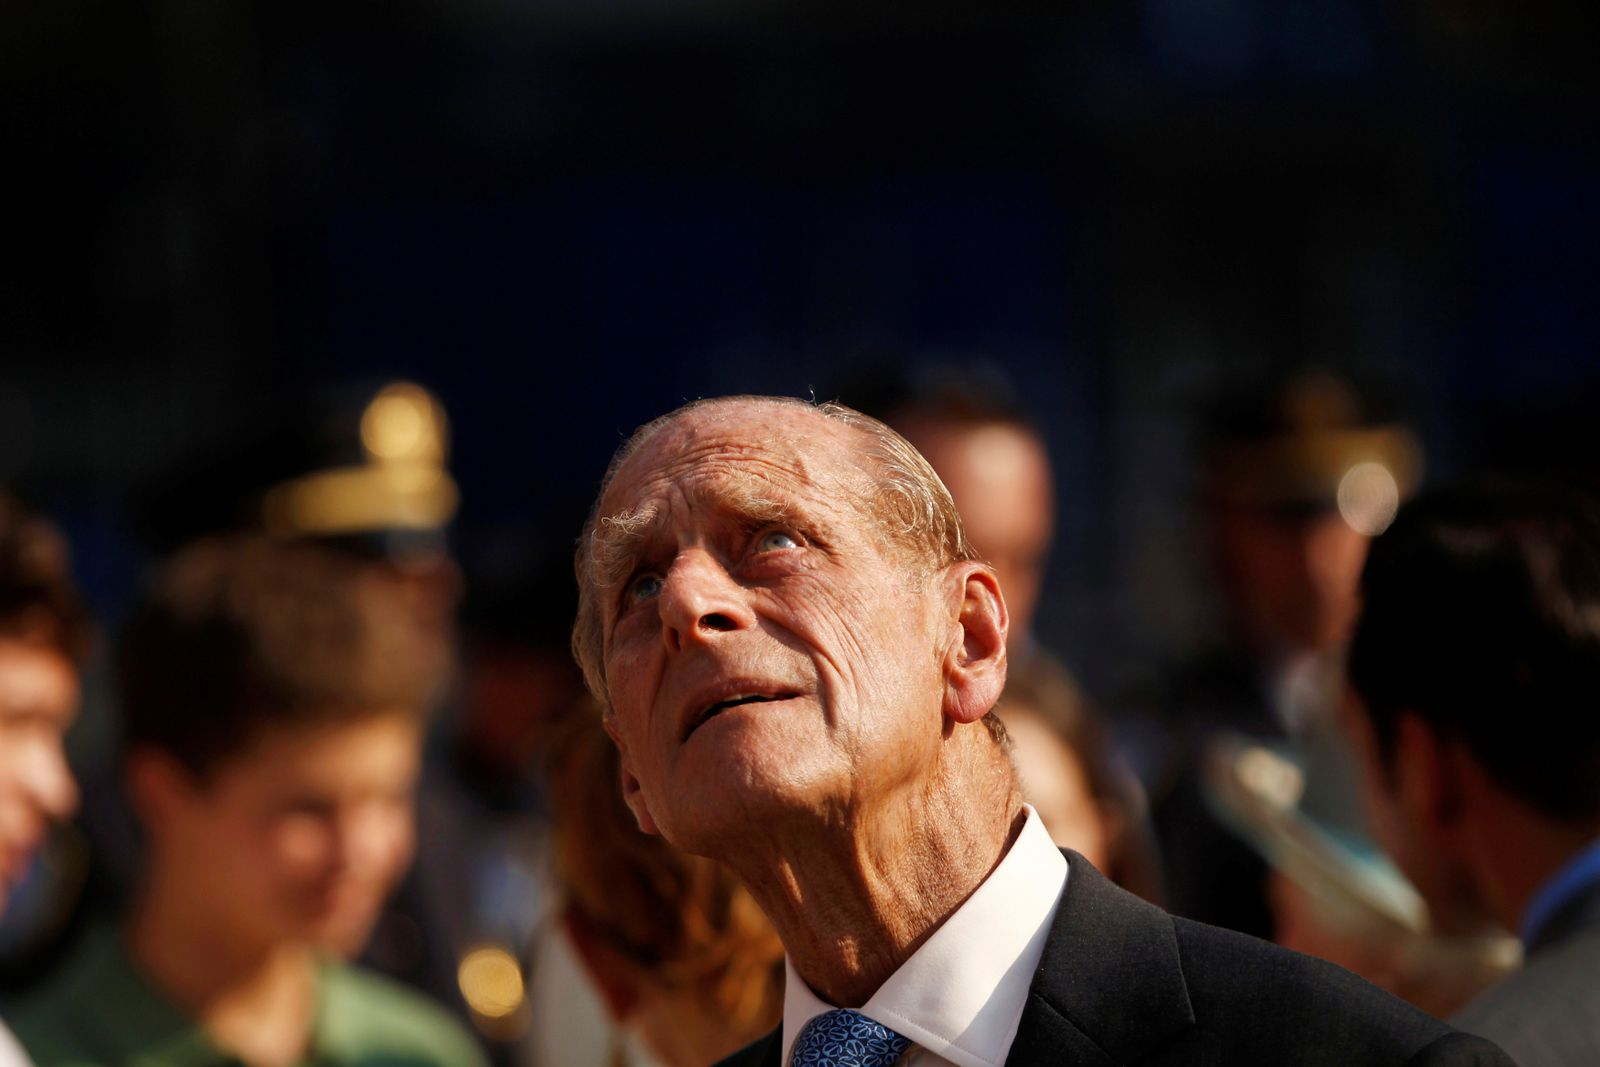 FILE PHOTO: Prince Philip looks up at the site of the September 11, 2001 World Trade Center attack in New York